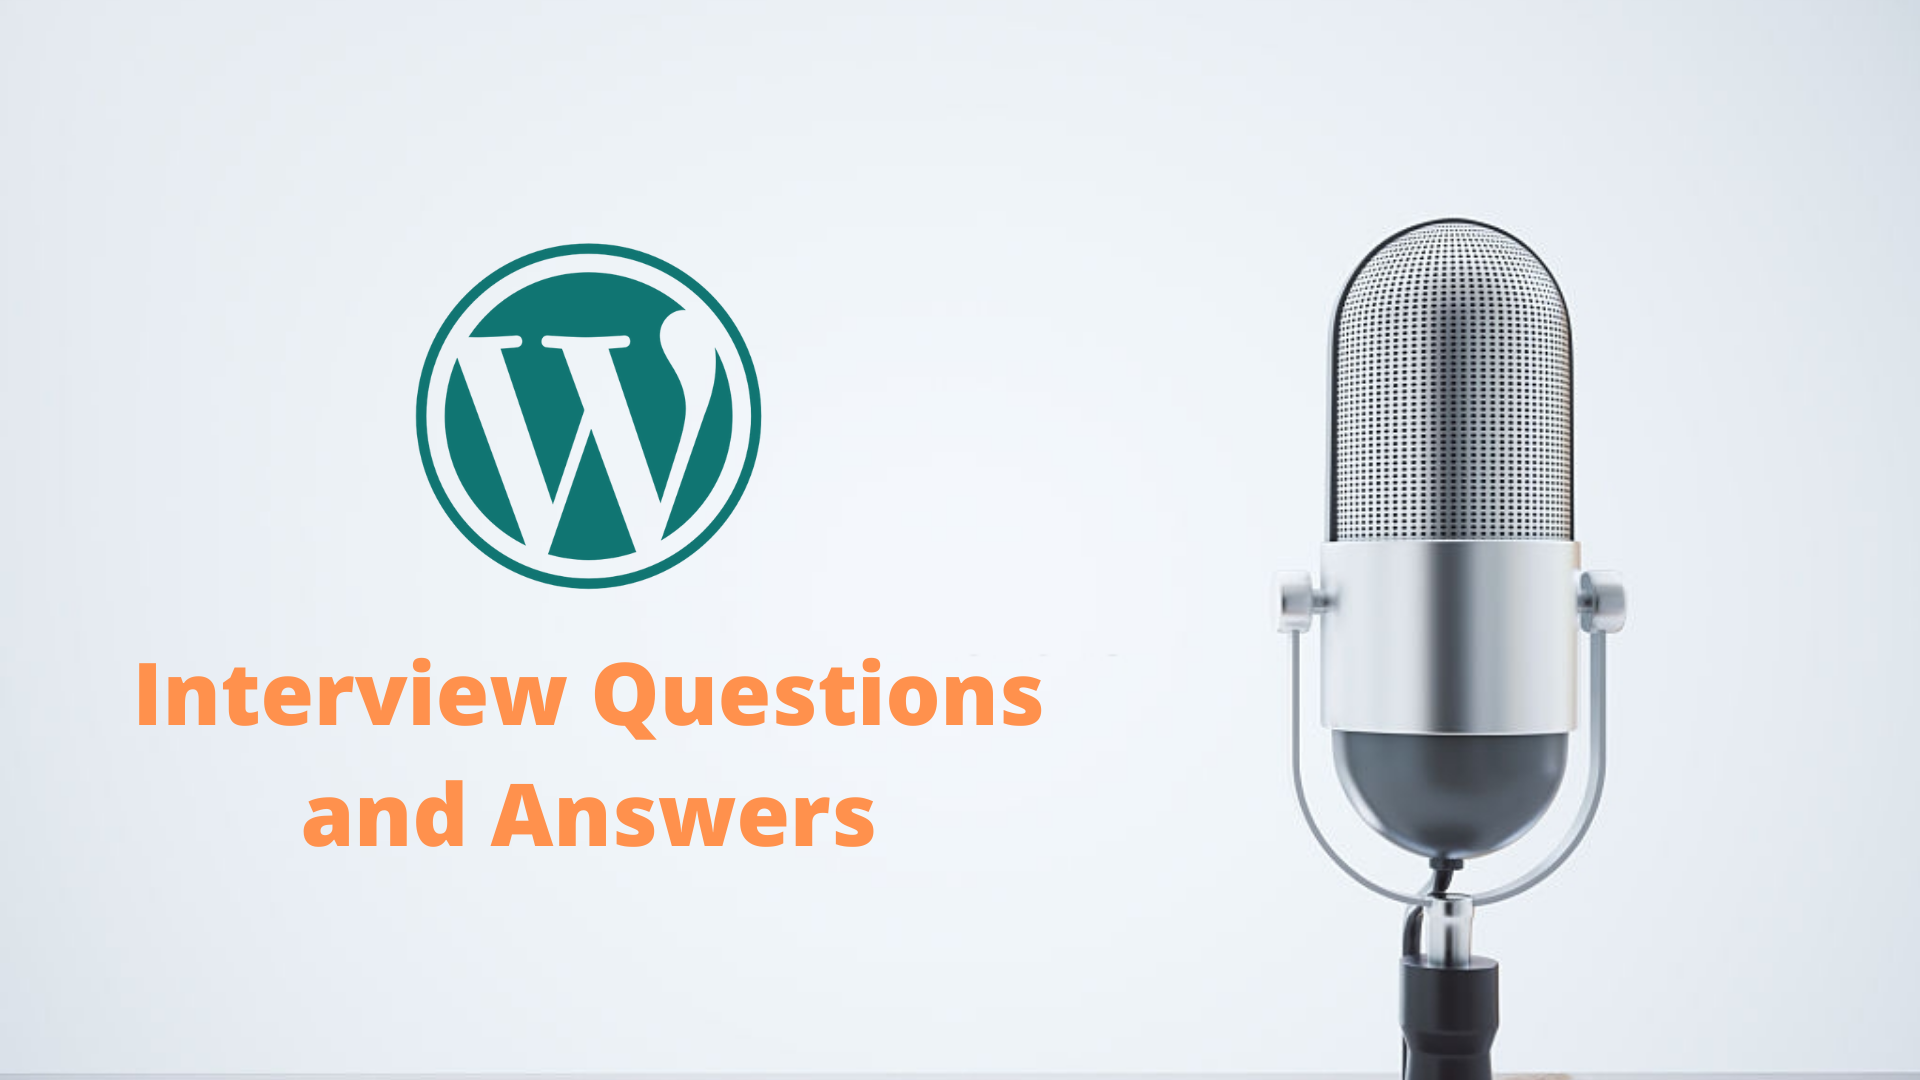 wordpress interview questions and answers - Top 35+ Wordpress Interview Questions & Answers in 2020